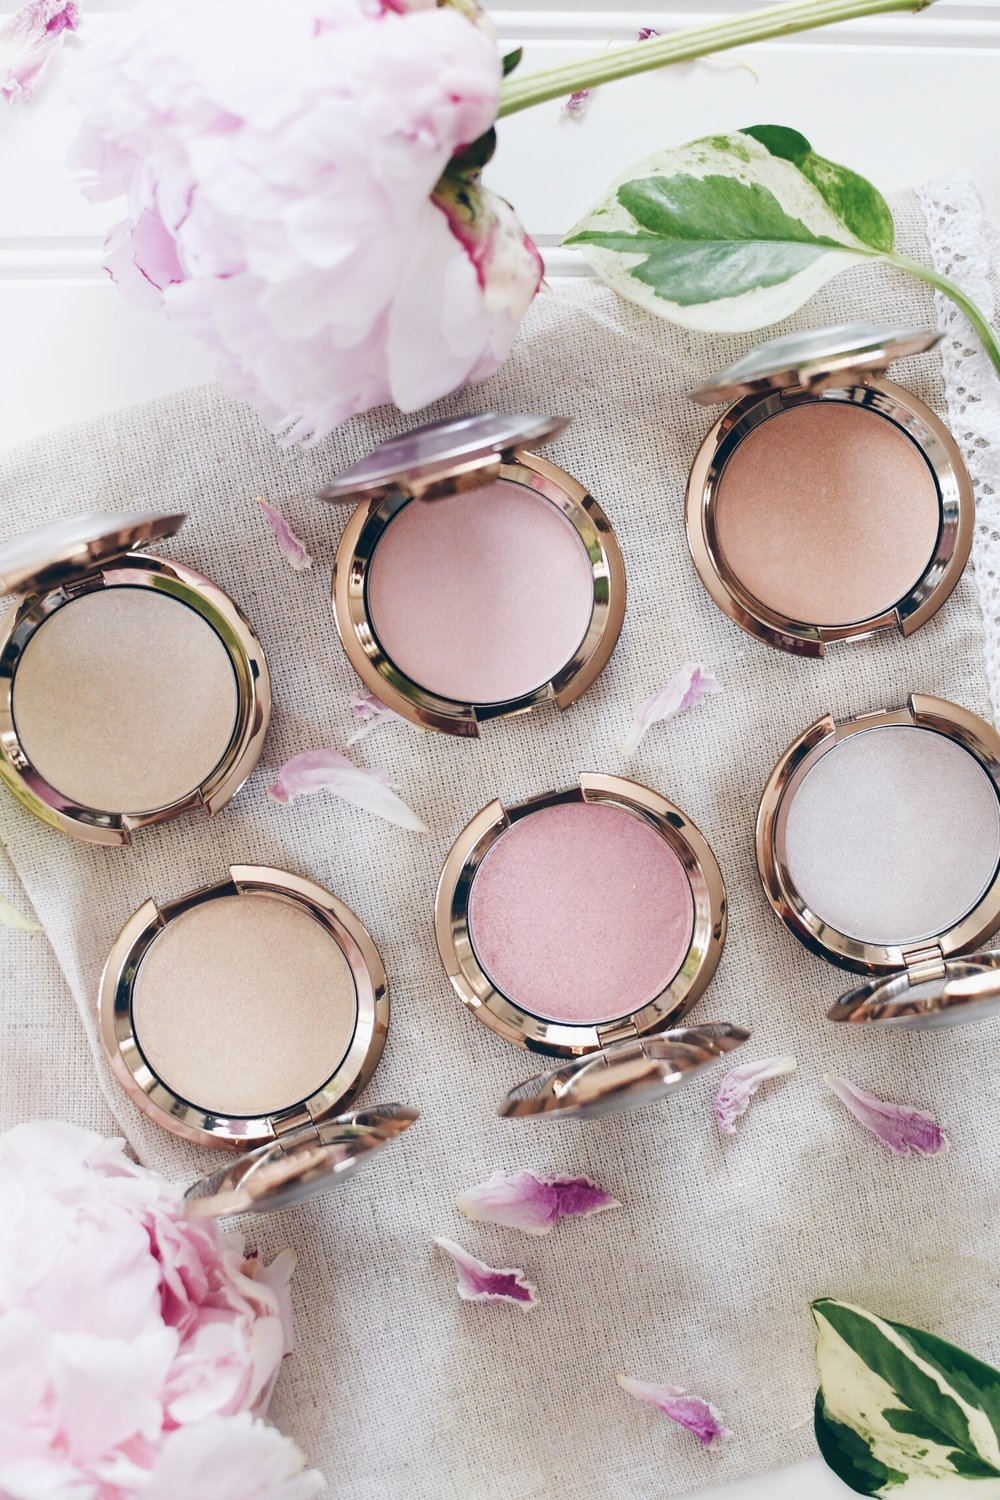 Becca Cosmetics Light Chaser Highlighters